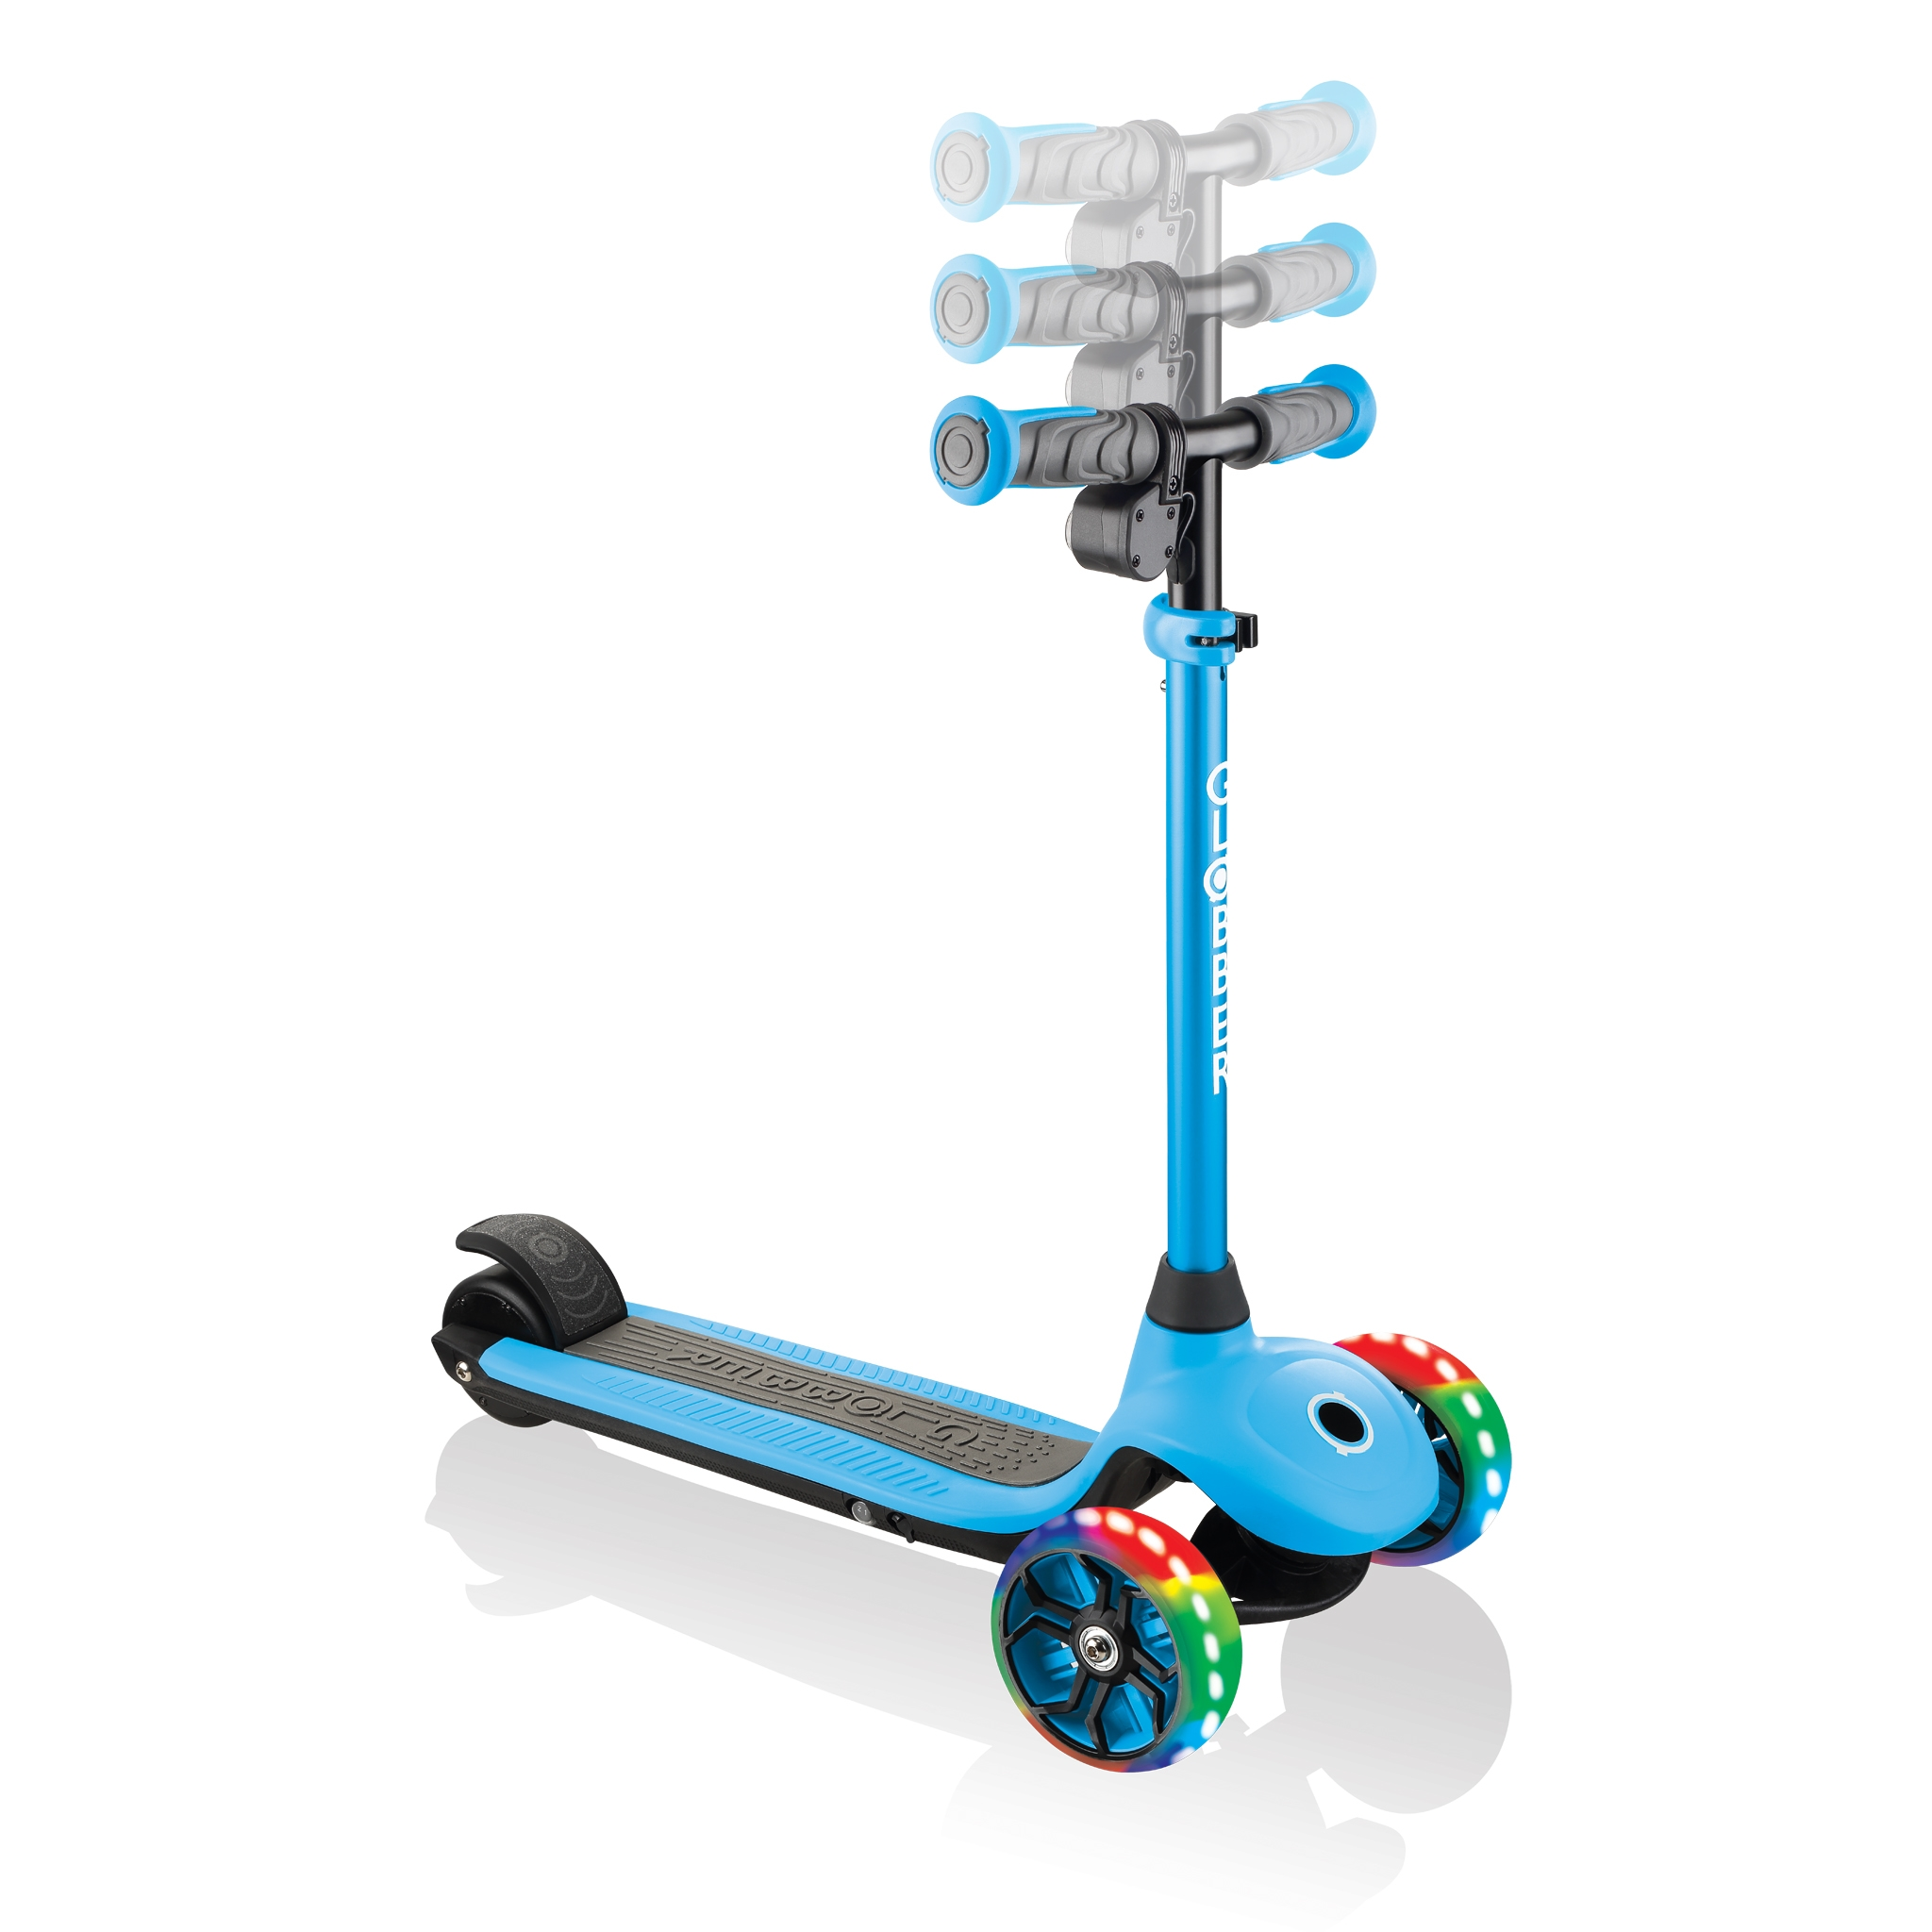 Globber-ONE-K-E-MOTION-4-award-winning-electric-scooter-for-kids-with-adjustable-T-bar-and-2-speed-modes_sky-blue 1